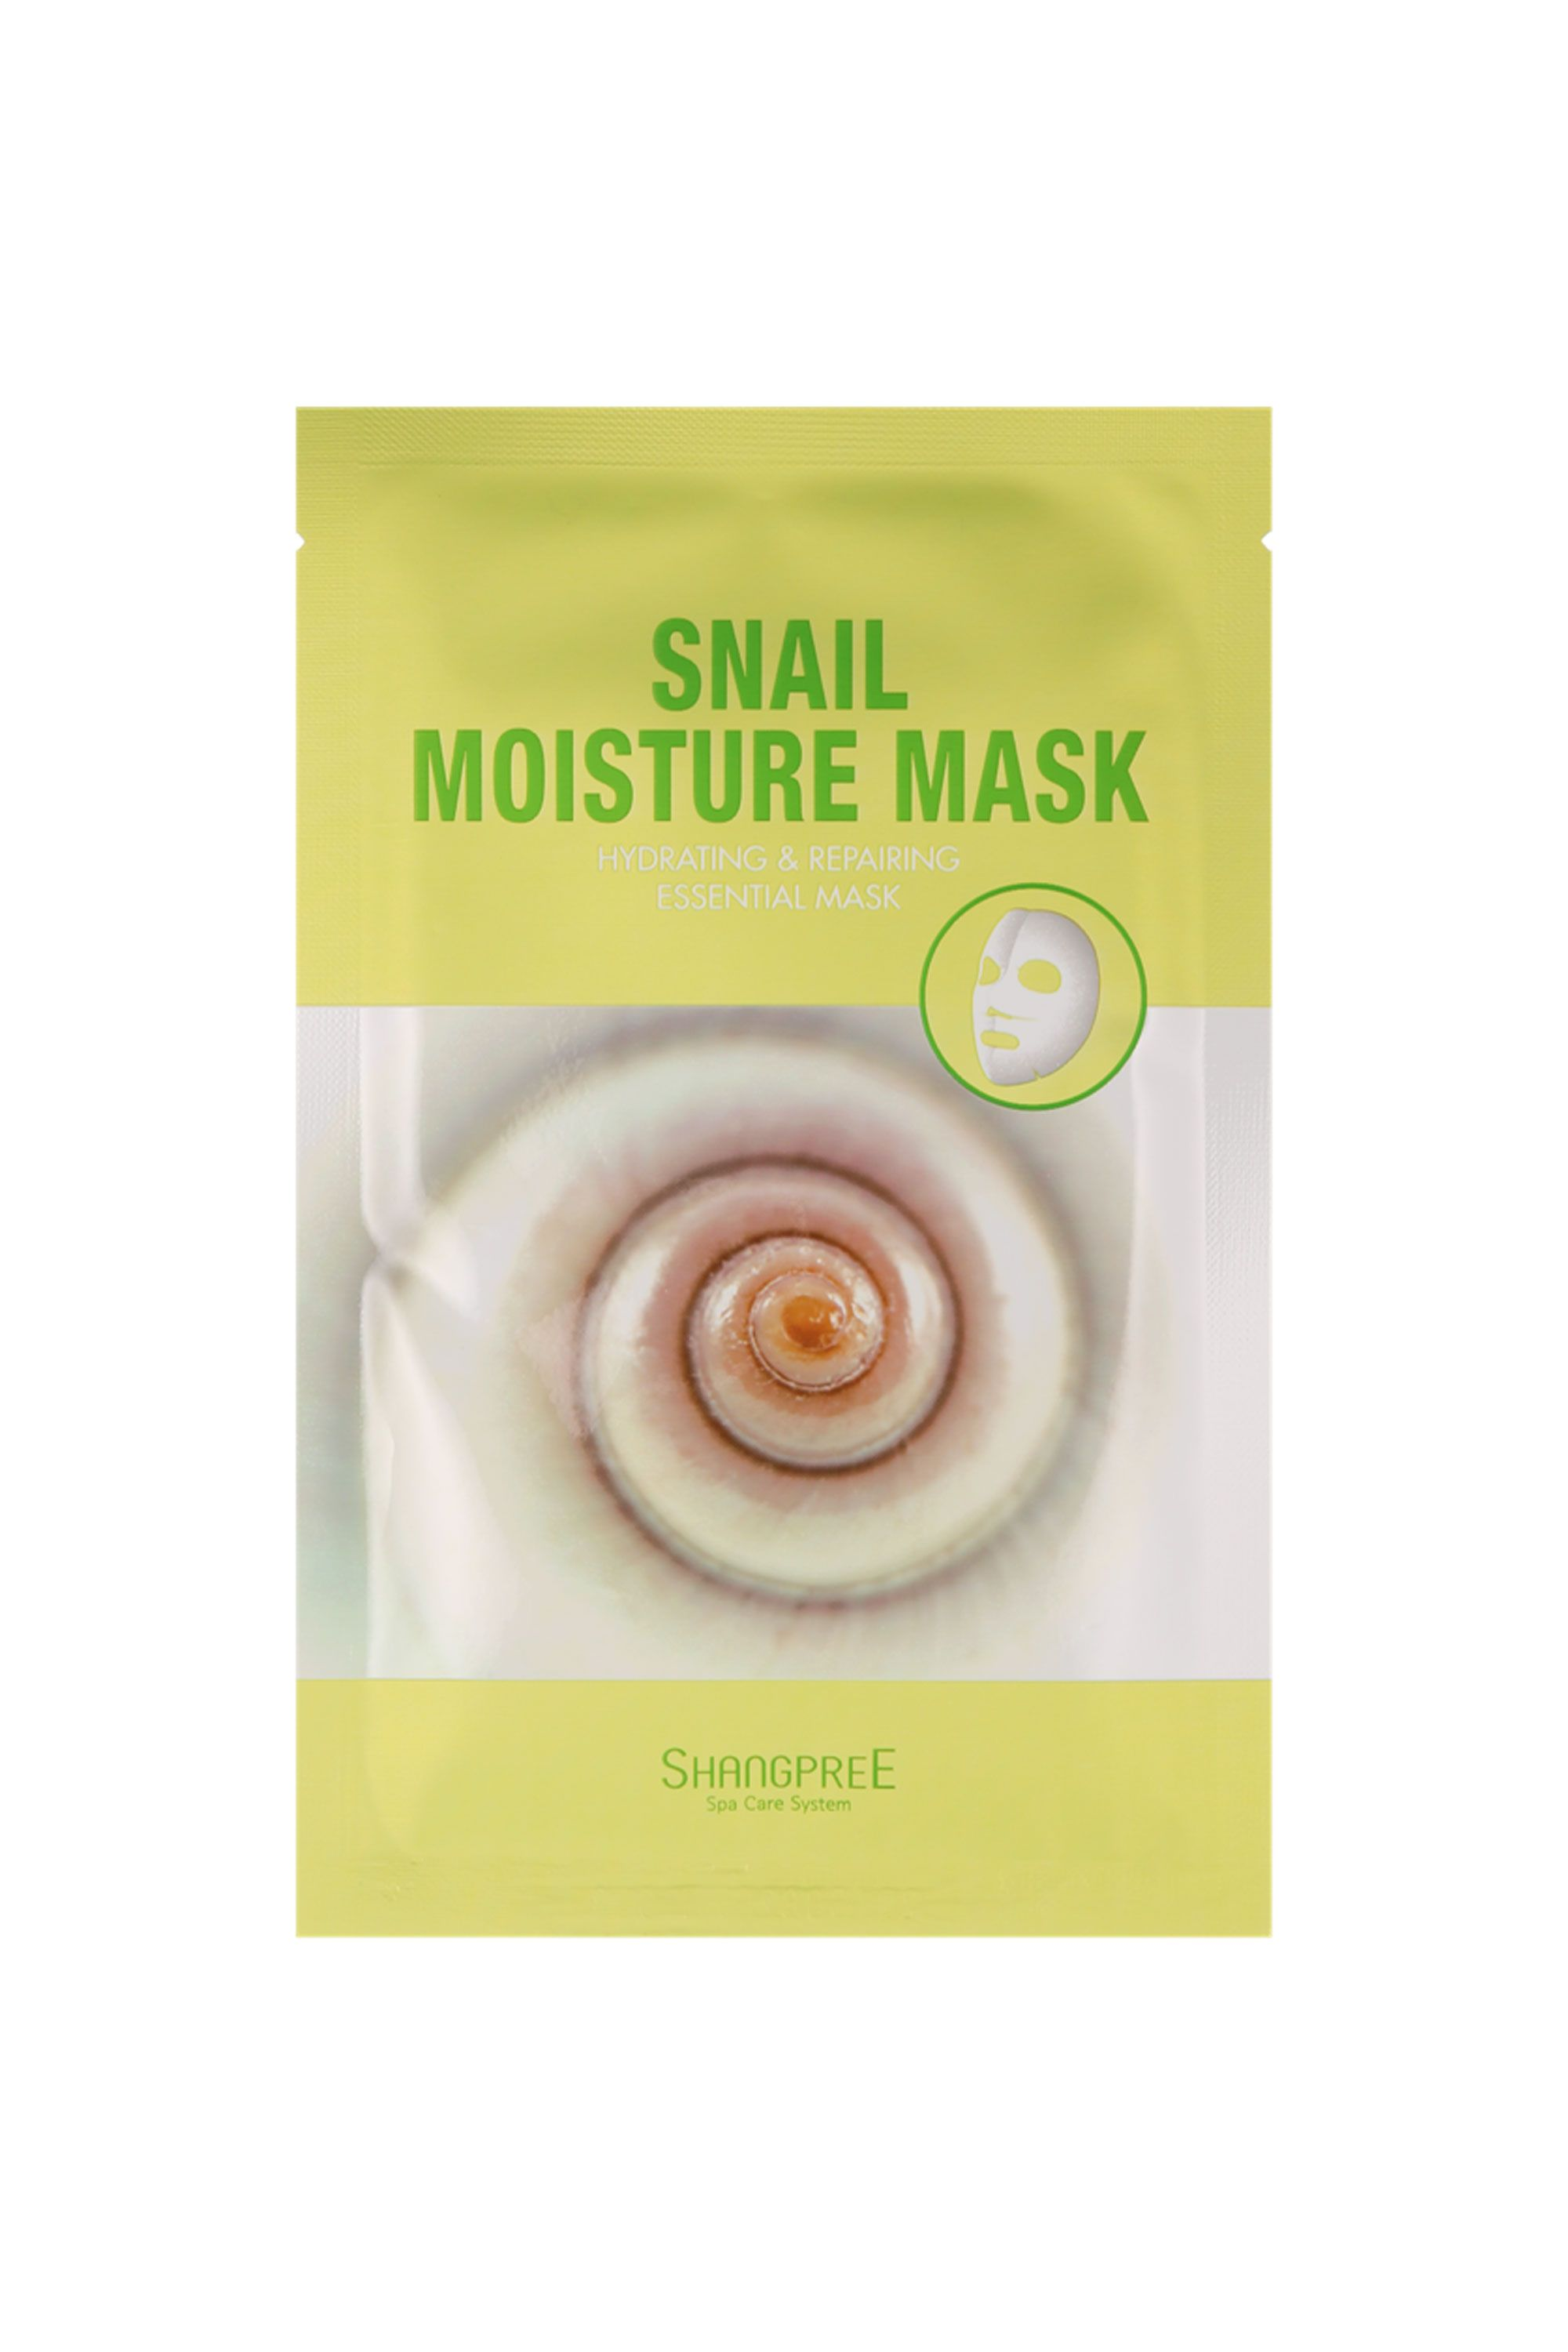 Shangpree Snail Moisture Mask Shangpree Snail Moisture Mask, $6 SHOP IT Snail mucin...so hot right now. Packed with glycolic acid and elastin, this will revitalize your skin while targeting wrinkles.